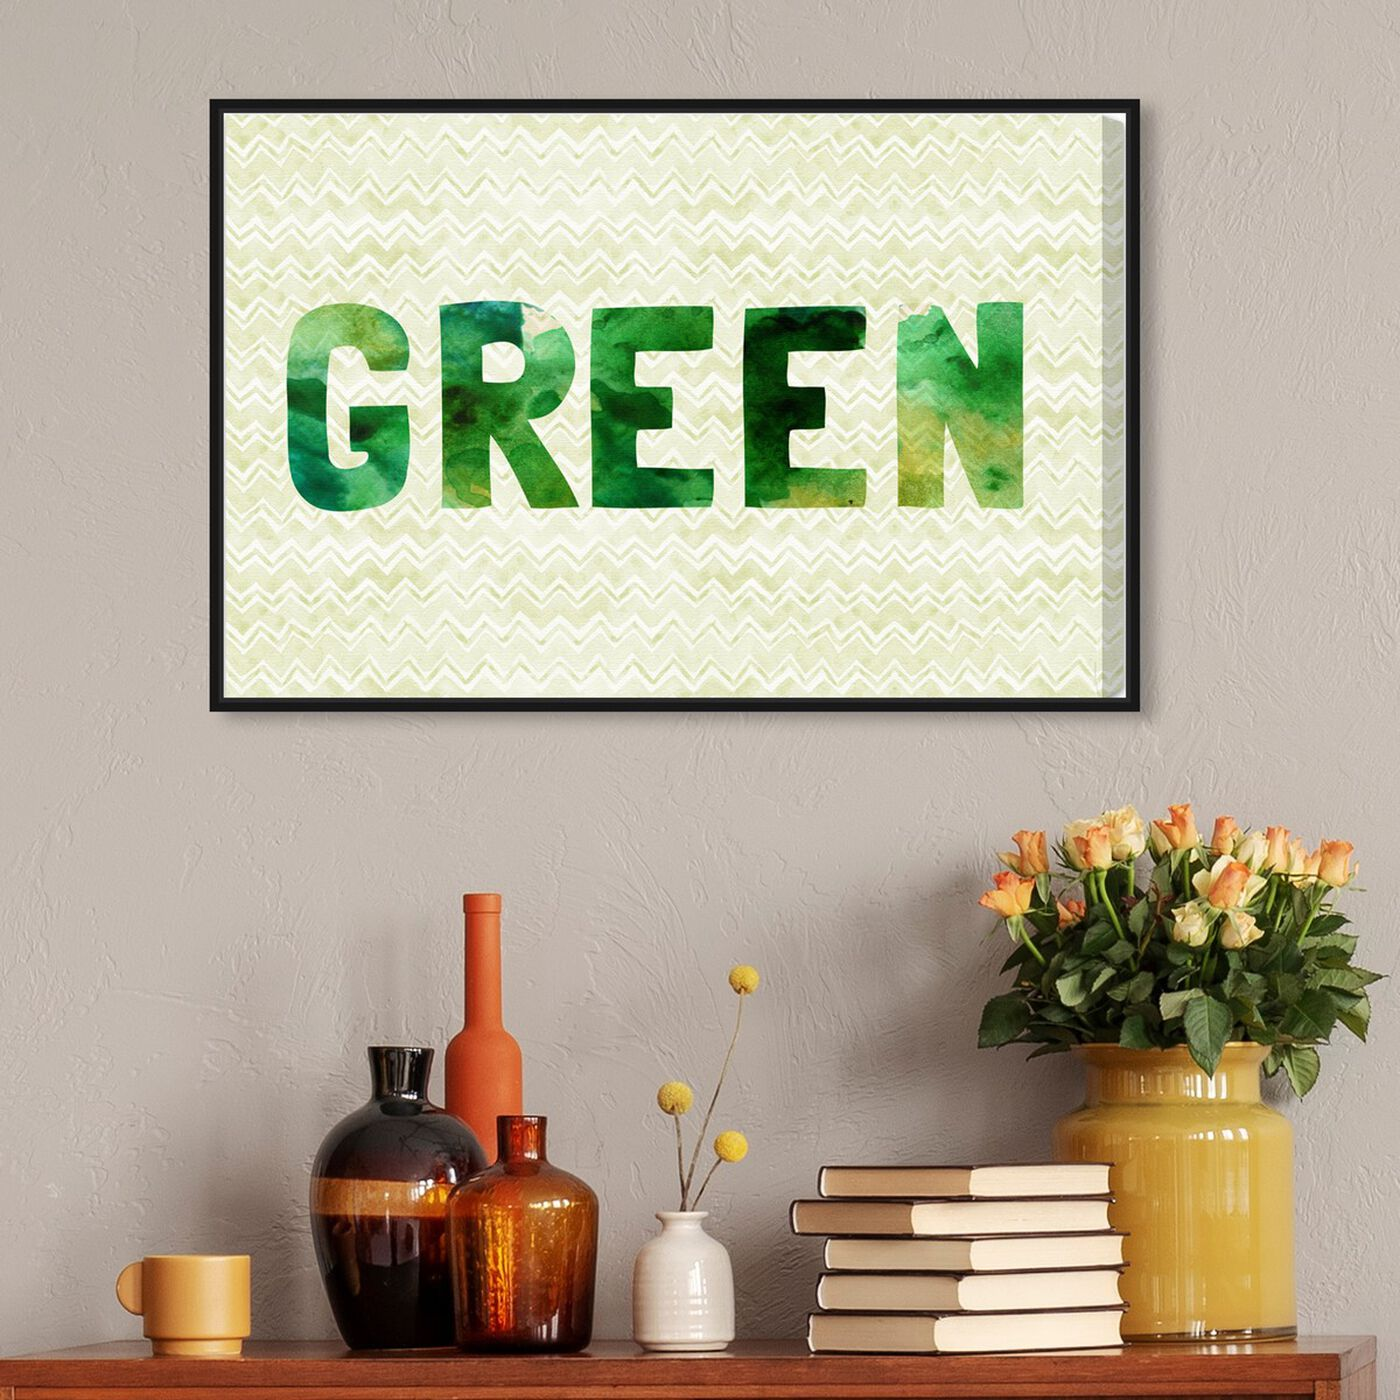 Hanging view of Green featuring typography and quotes and quotes and sayings art.